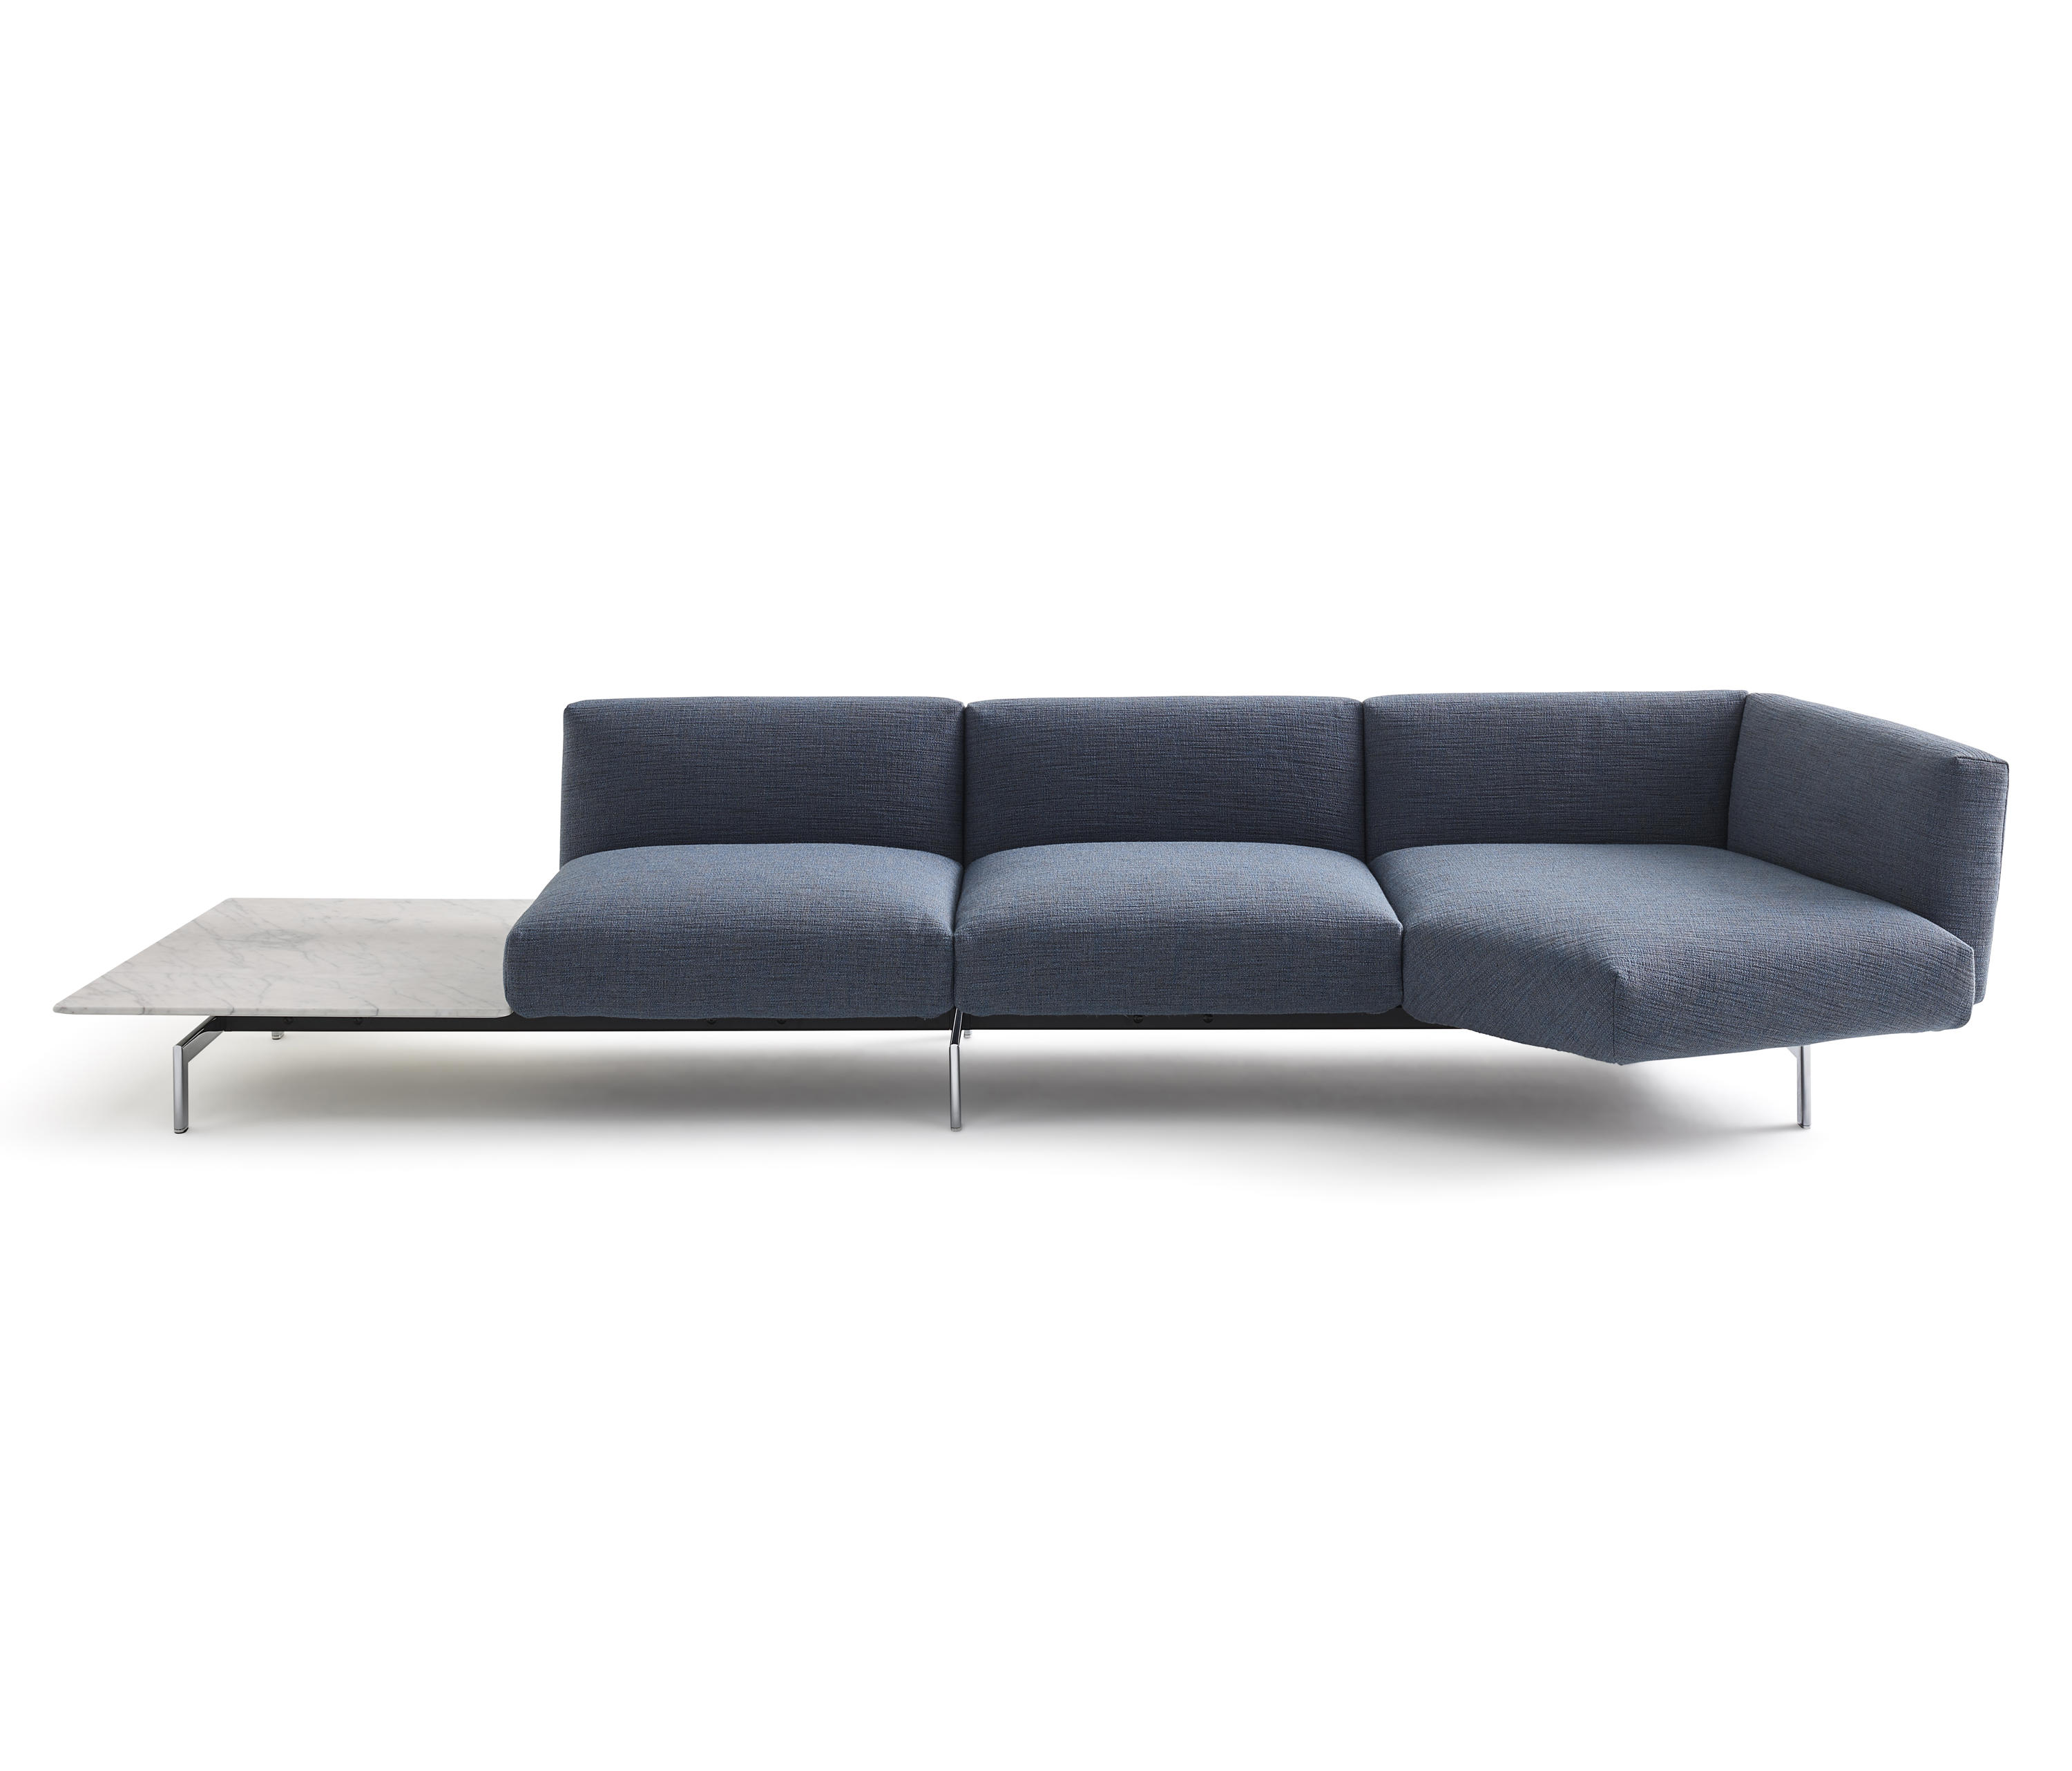 backabro the with pertaining ikea chaise best bed to sofa furniture lounge longue nordvalla red